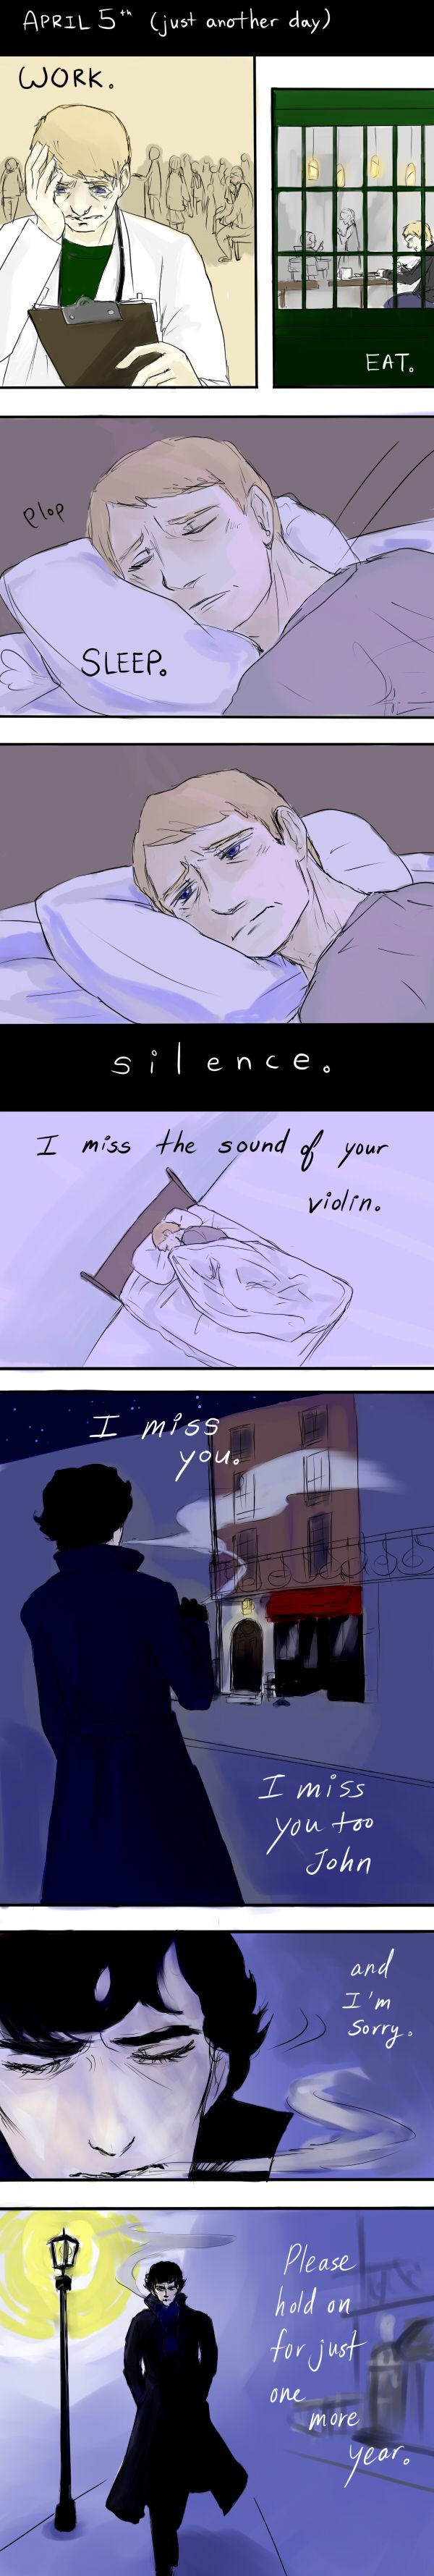 Sherlock: Just another day/One more year by krusca.deviantart.com on @deviantART